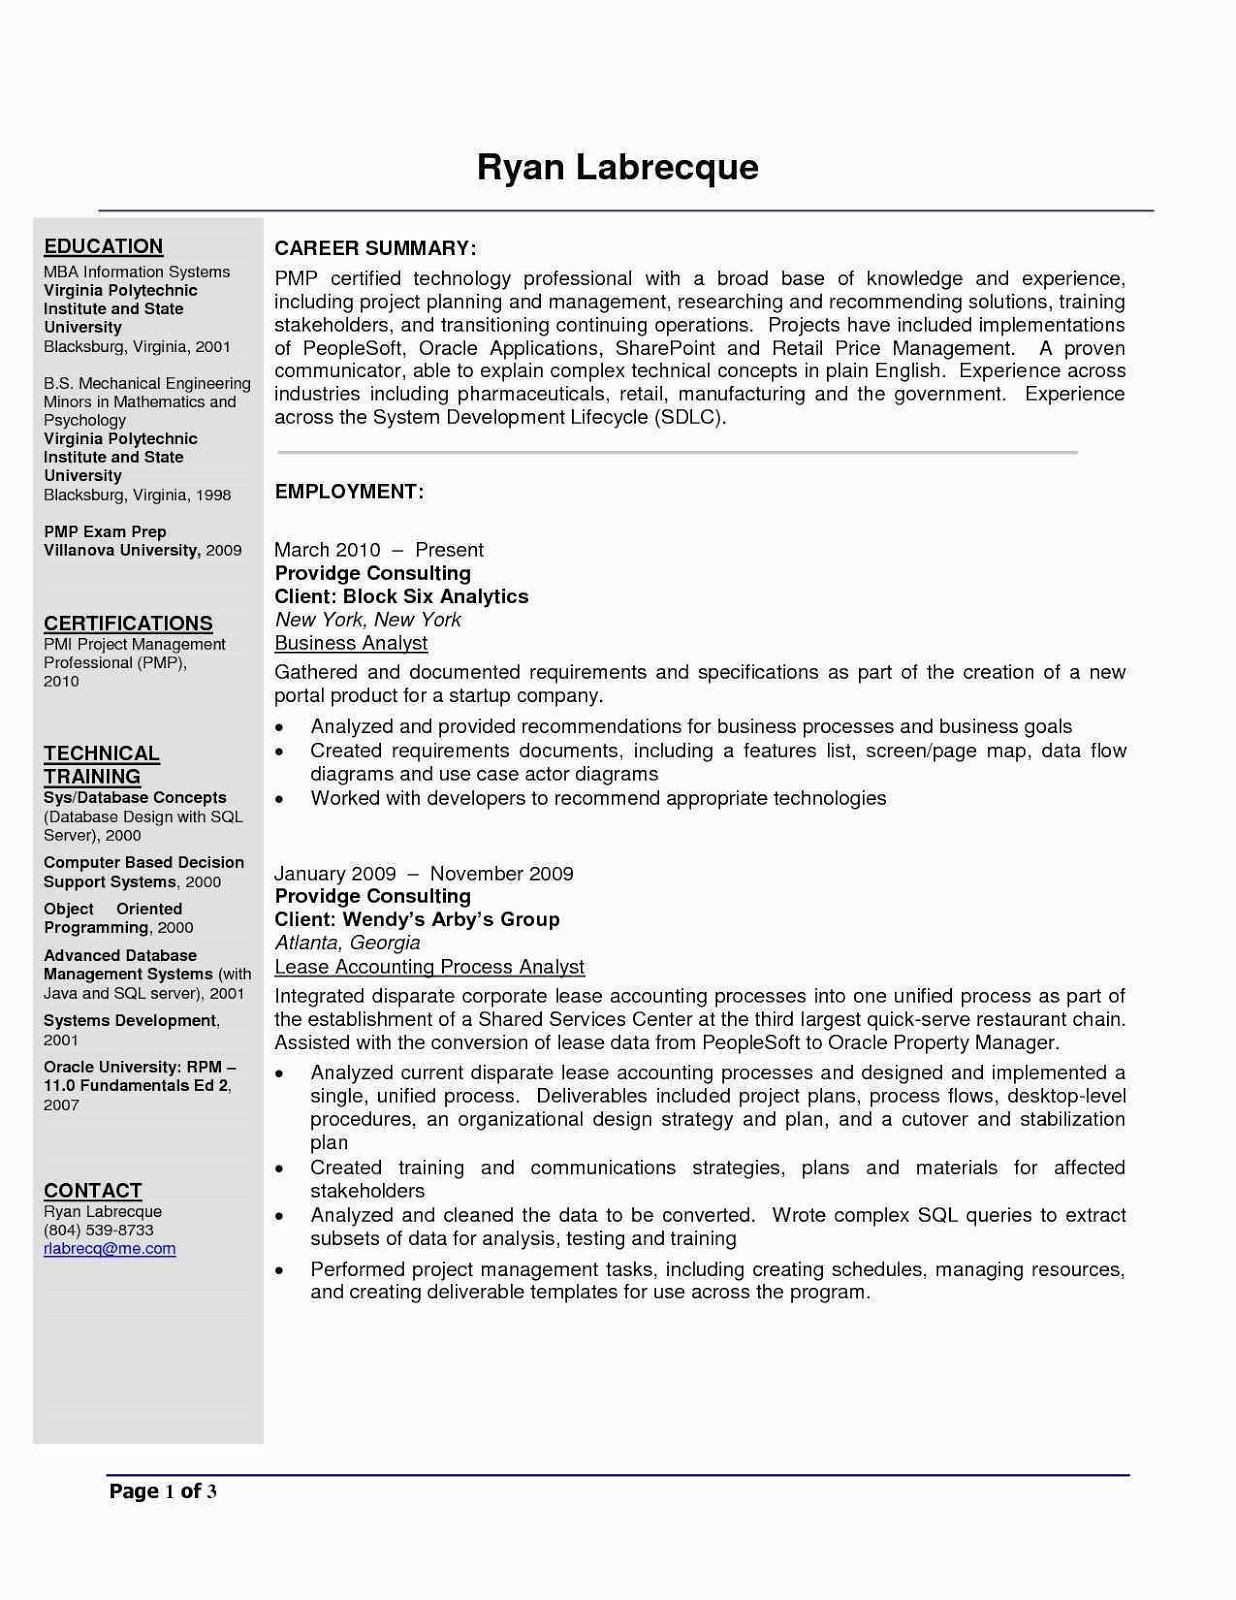 academic cv samples resume format site college examples general for freshers instrument Resume College Resume Examples 2020